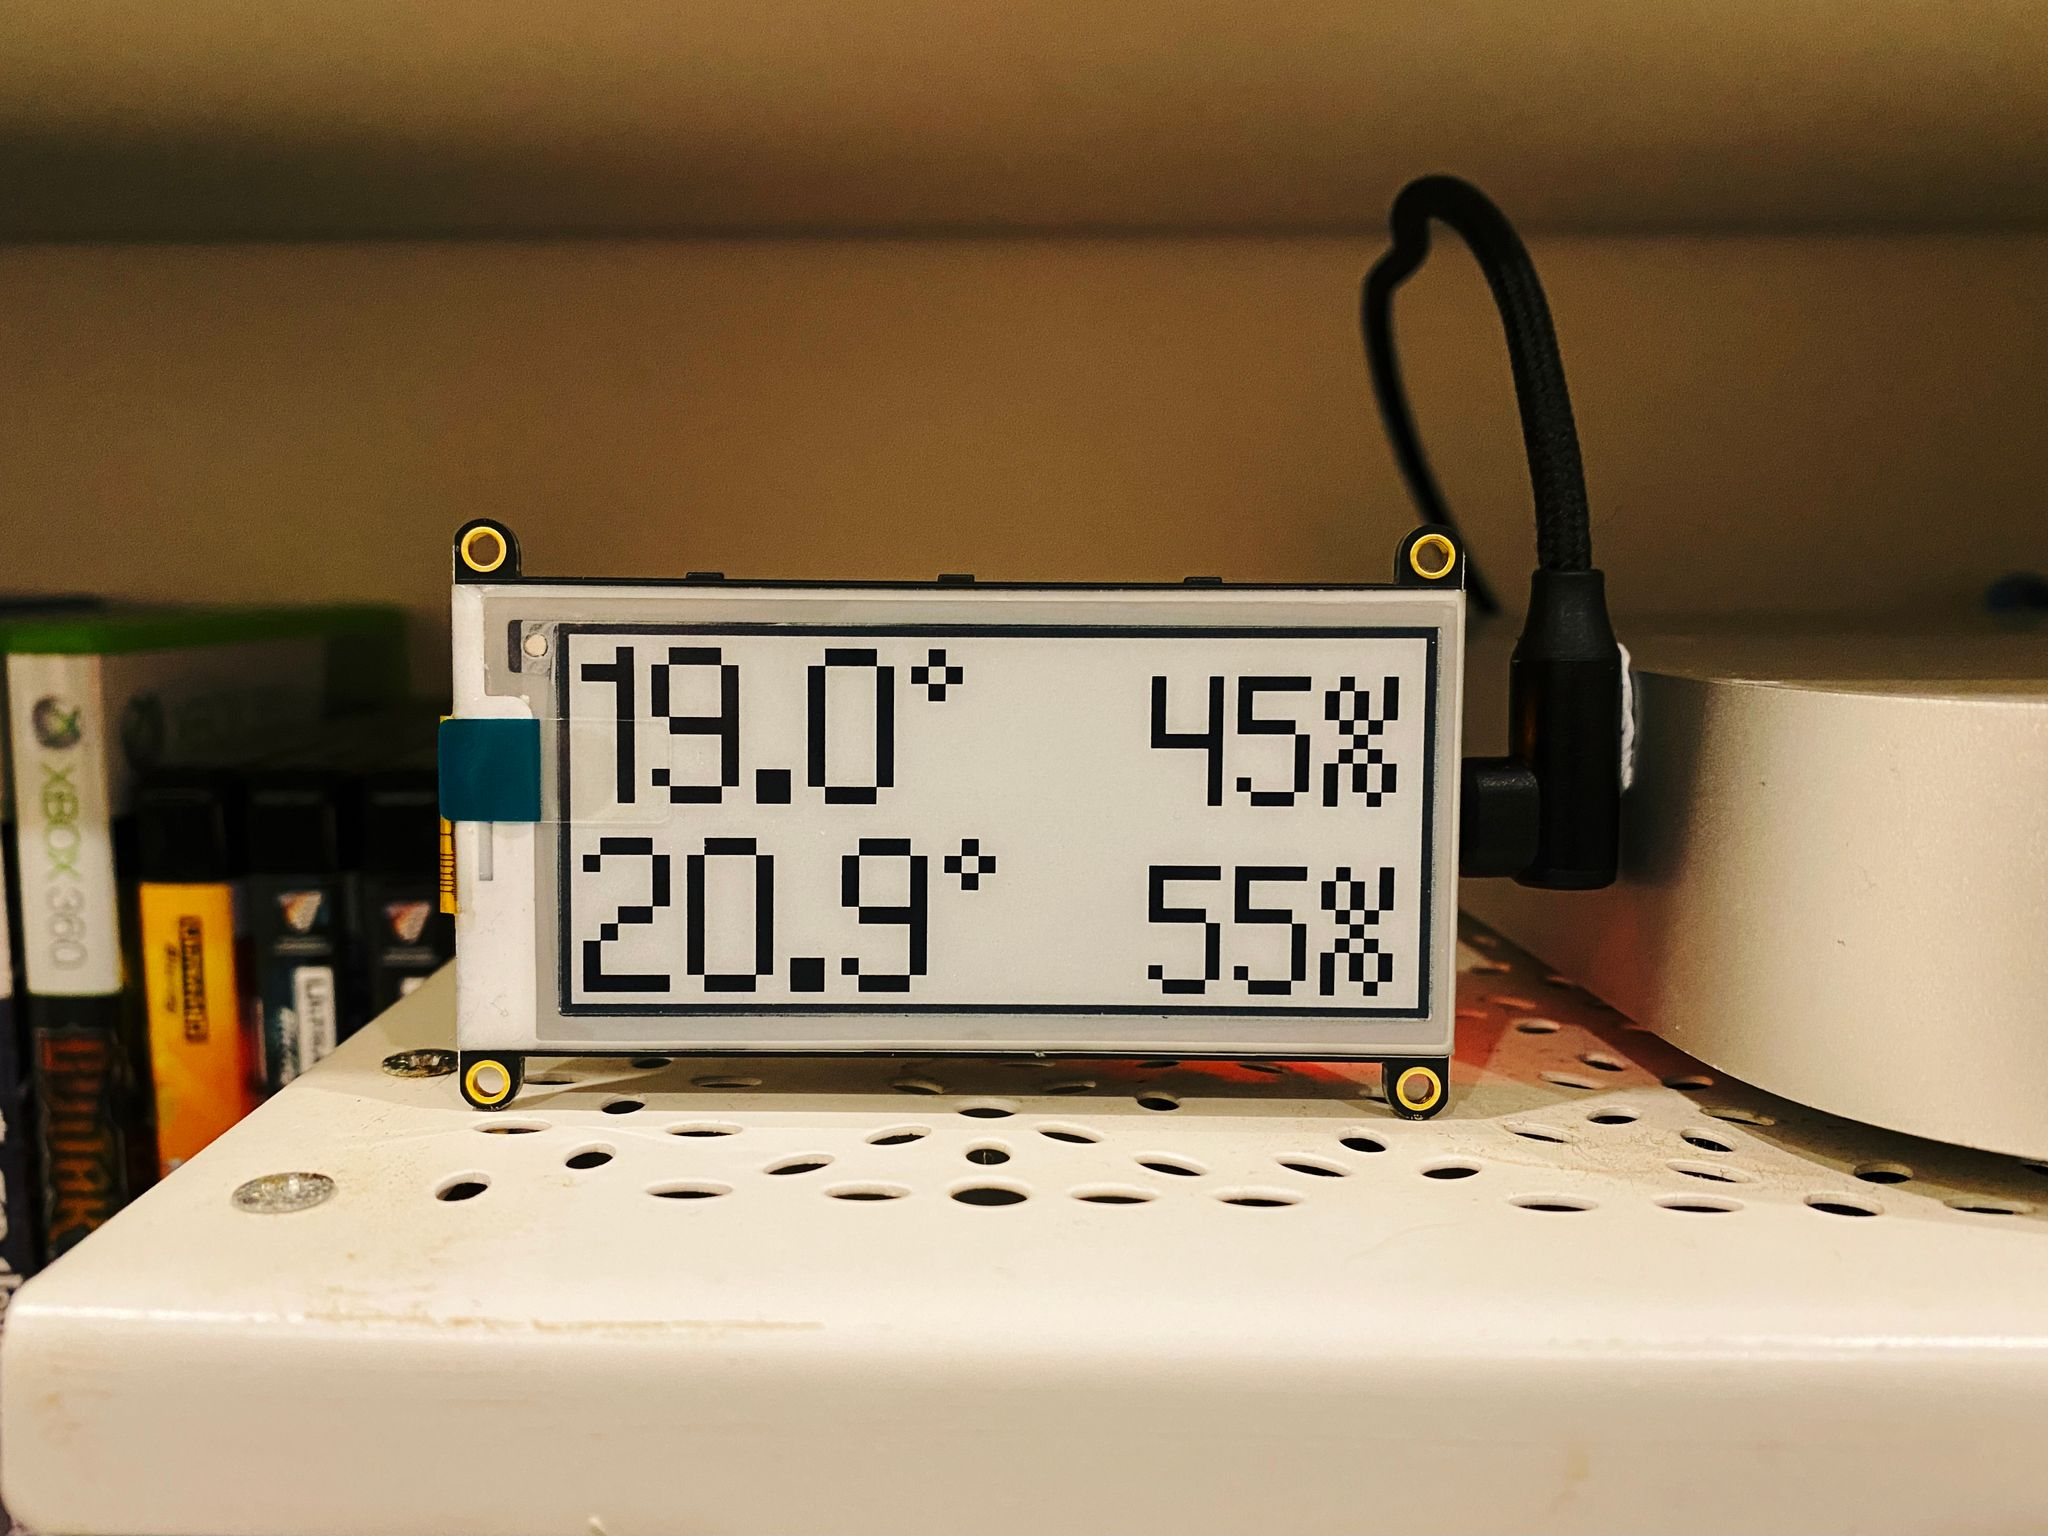 A photo of an e-ink display with a blocky pixel font, showing the current outdoor and indoor temperature and humidity.